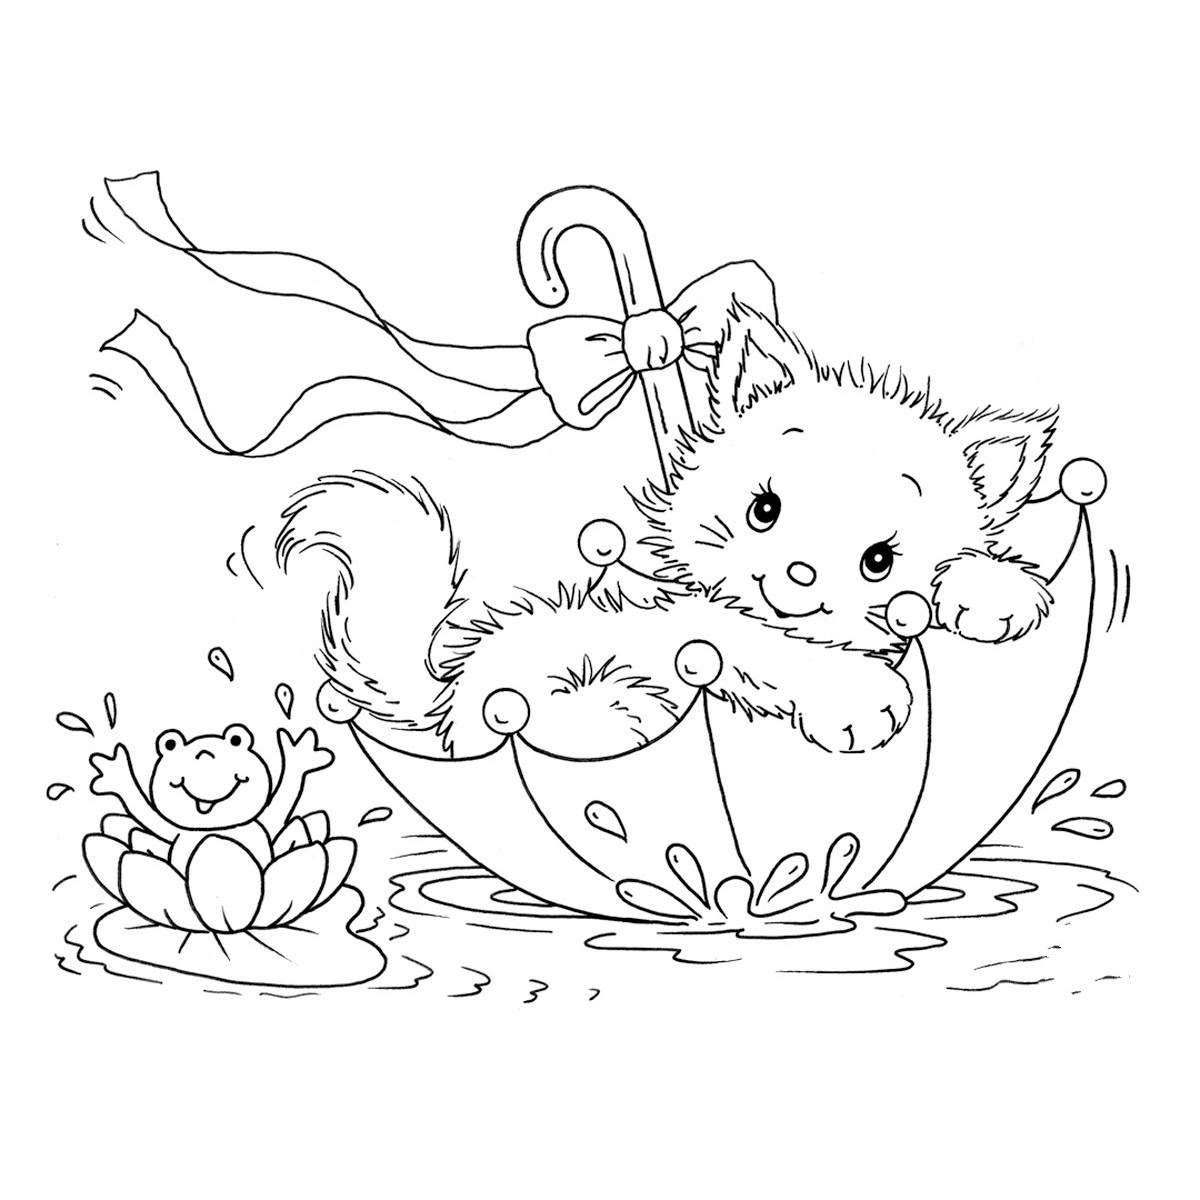 coloring cat pages free printable cat coloring pages for kids pages cat coloring 1 1